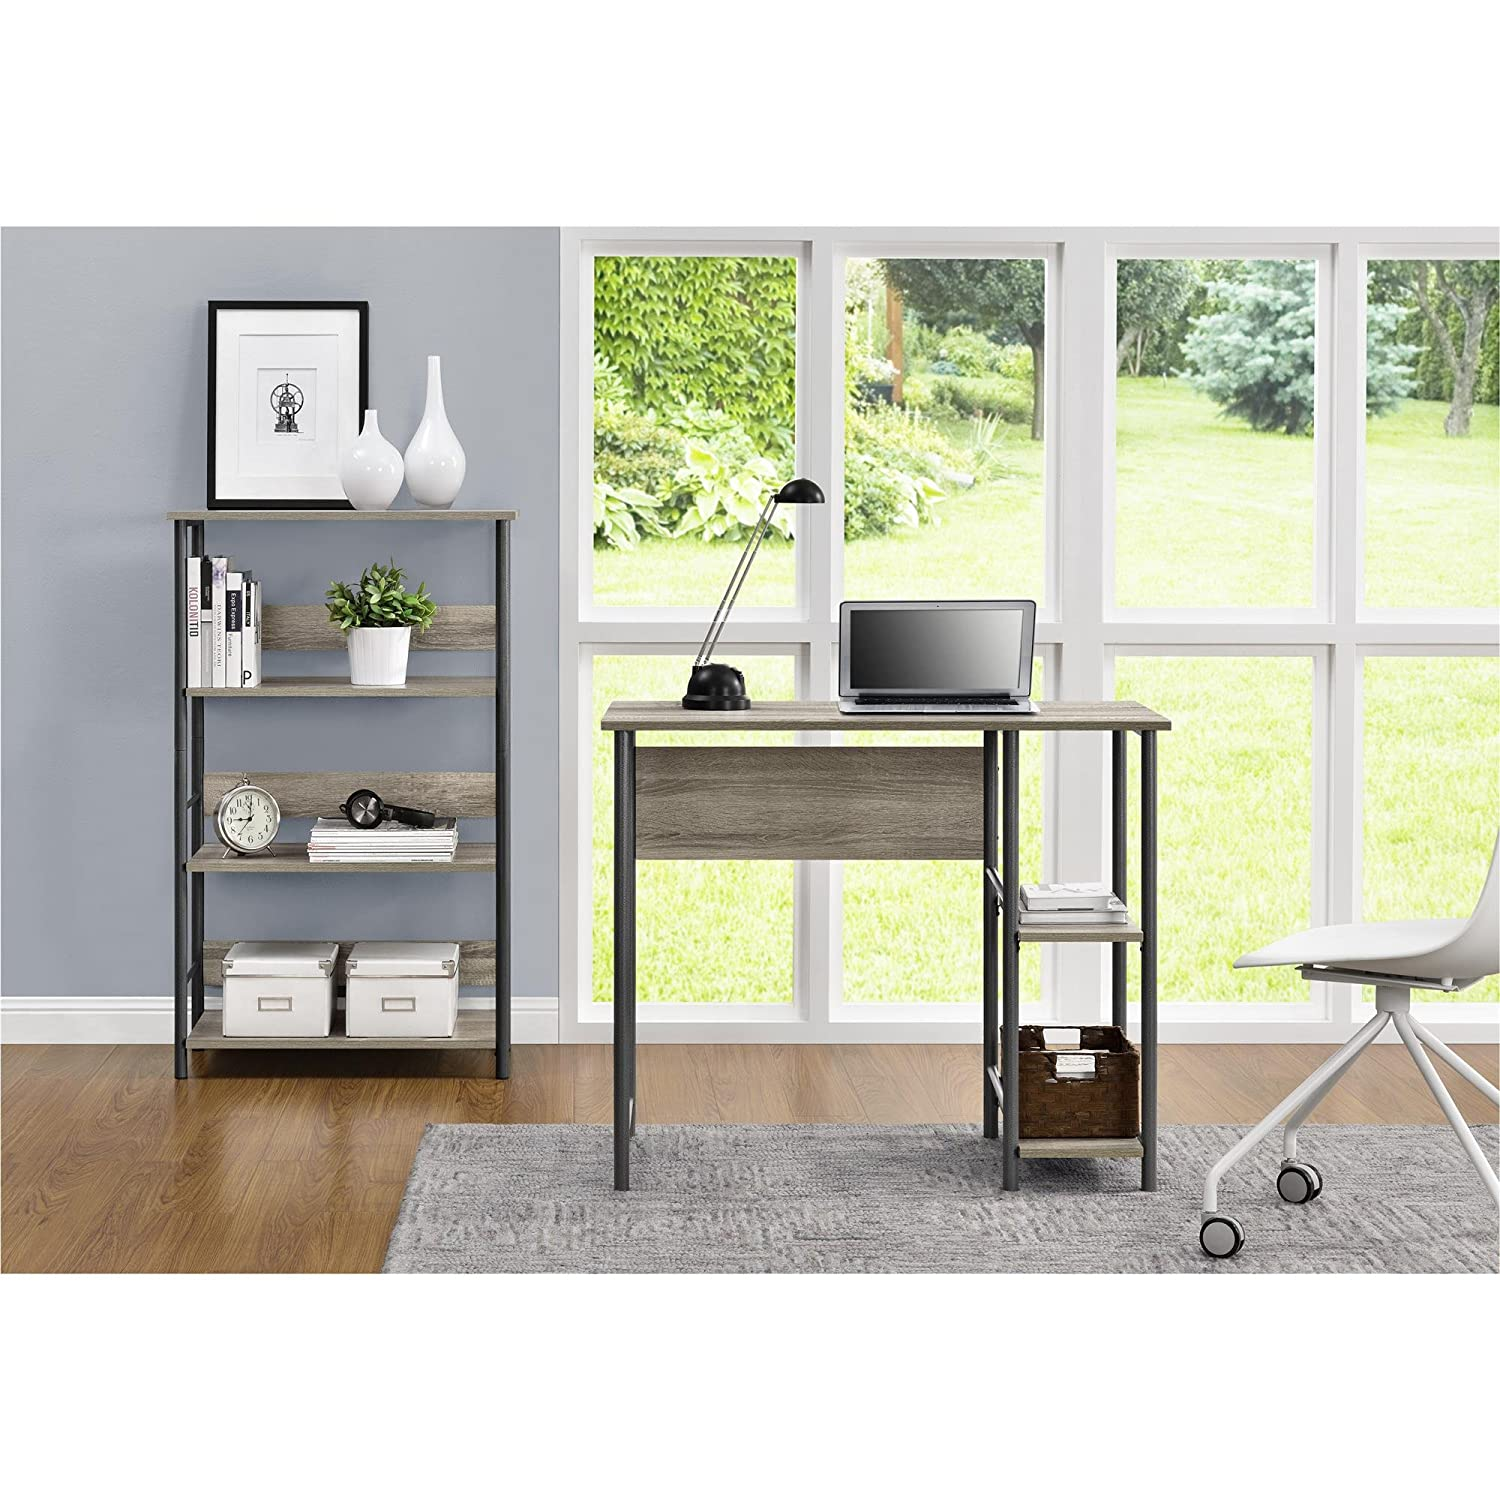 Amazon: Altra Furniture 9254196COM Garrett Desk Combo Altra Metal  Student Bookcase, Sonoma Oak/Gunmetal Gray: Kitchen & Dining